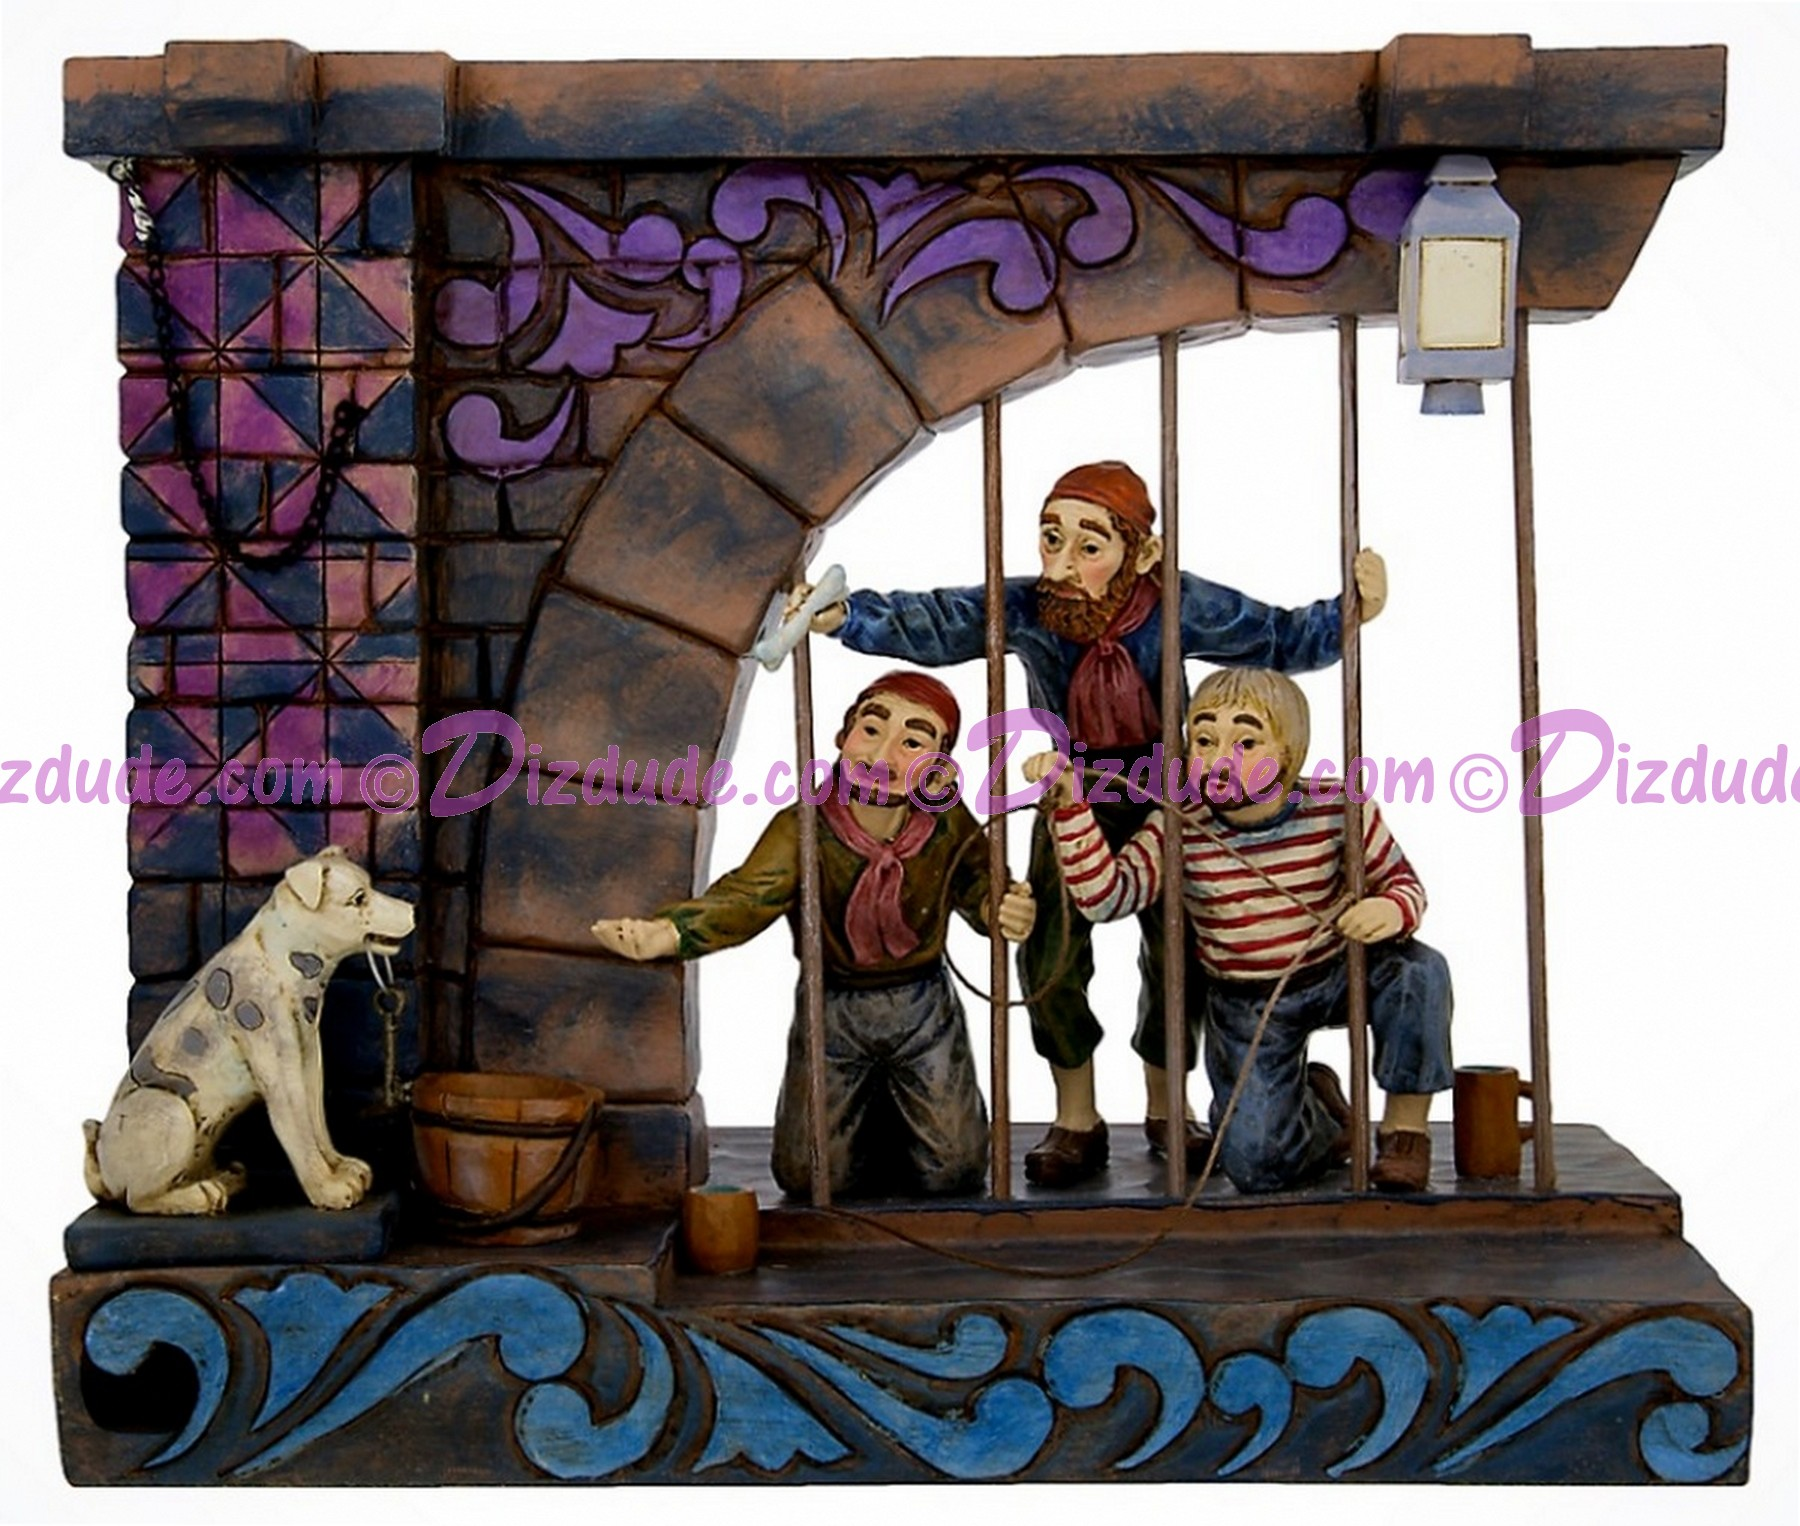 Disney's Pirates of the Caribbean Pirates Jail Scene Figure - Disney Traditions by Artist Jim Shore © Dizdude.com